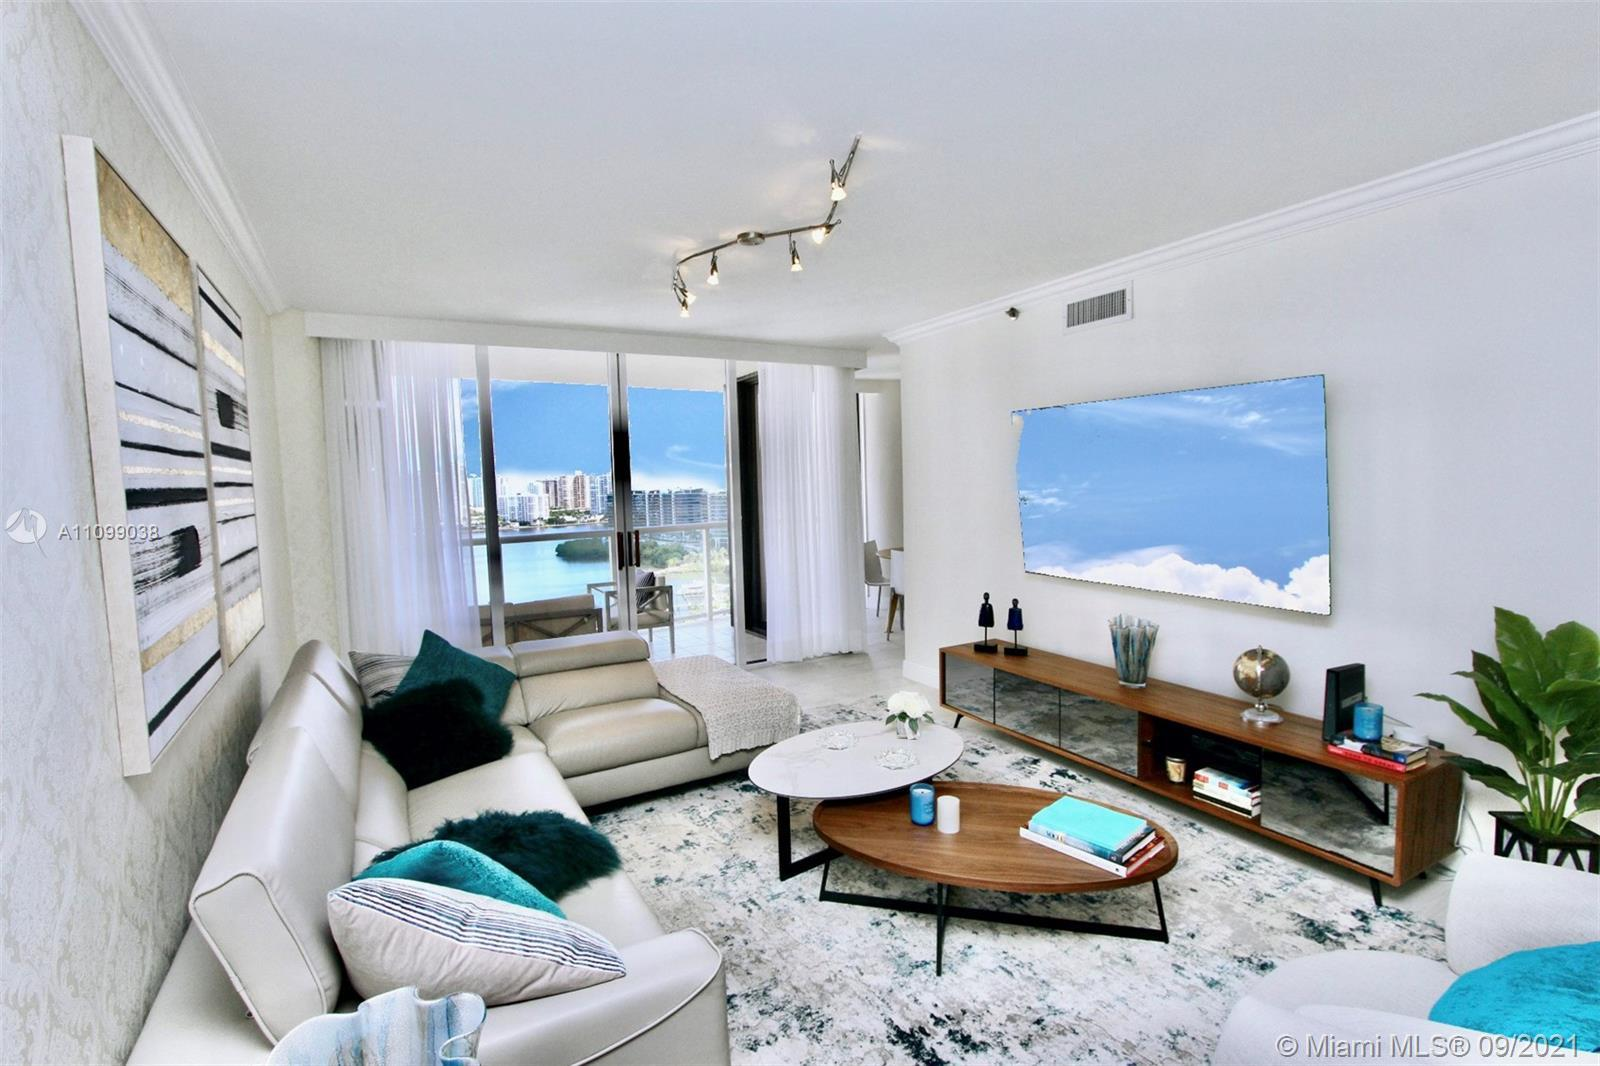 UNOBSTRUCTED INTRACOASTAL AND OCEAN VIEWS FROM ALL ROOMS. BEAUTIFUL AND TOTALLY REDONE 1 BR/1 1/2 BA